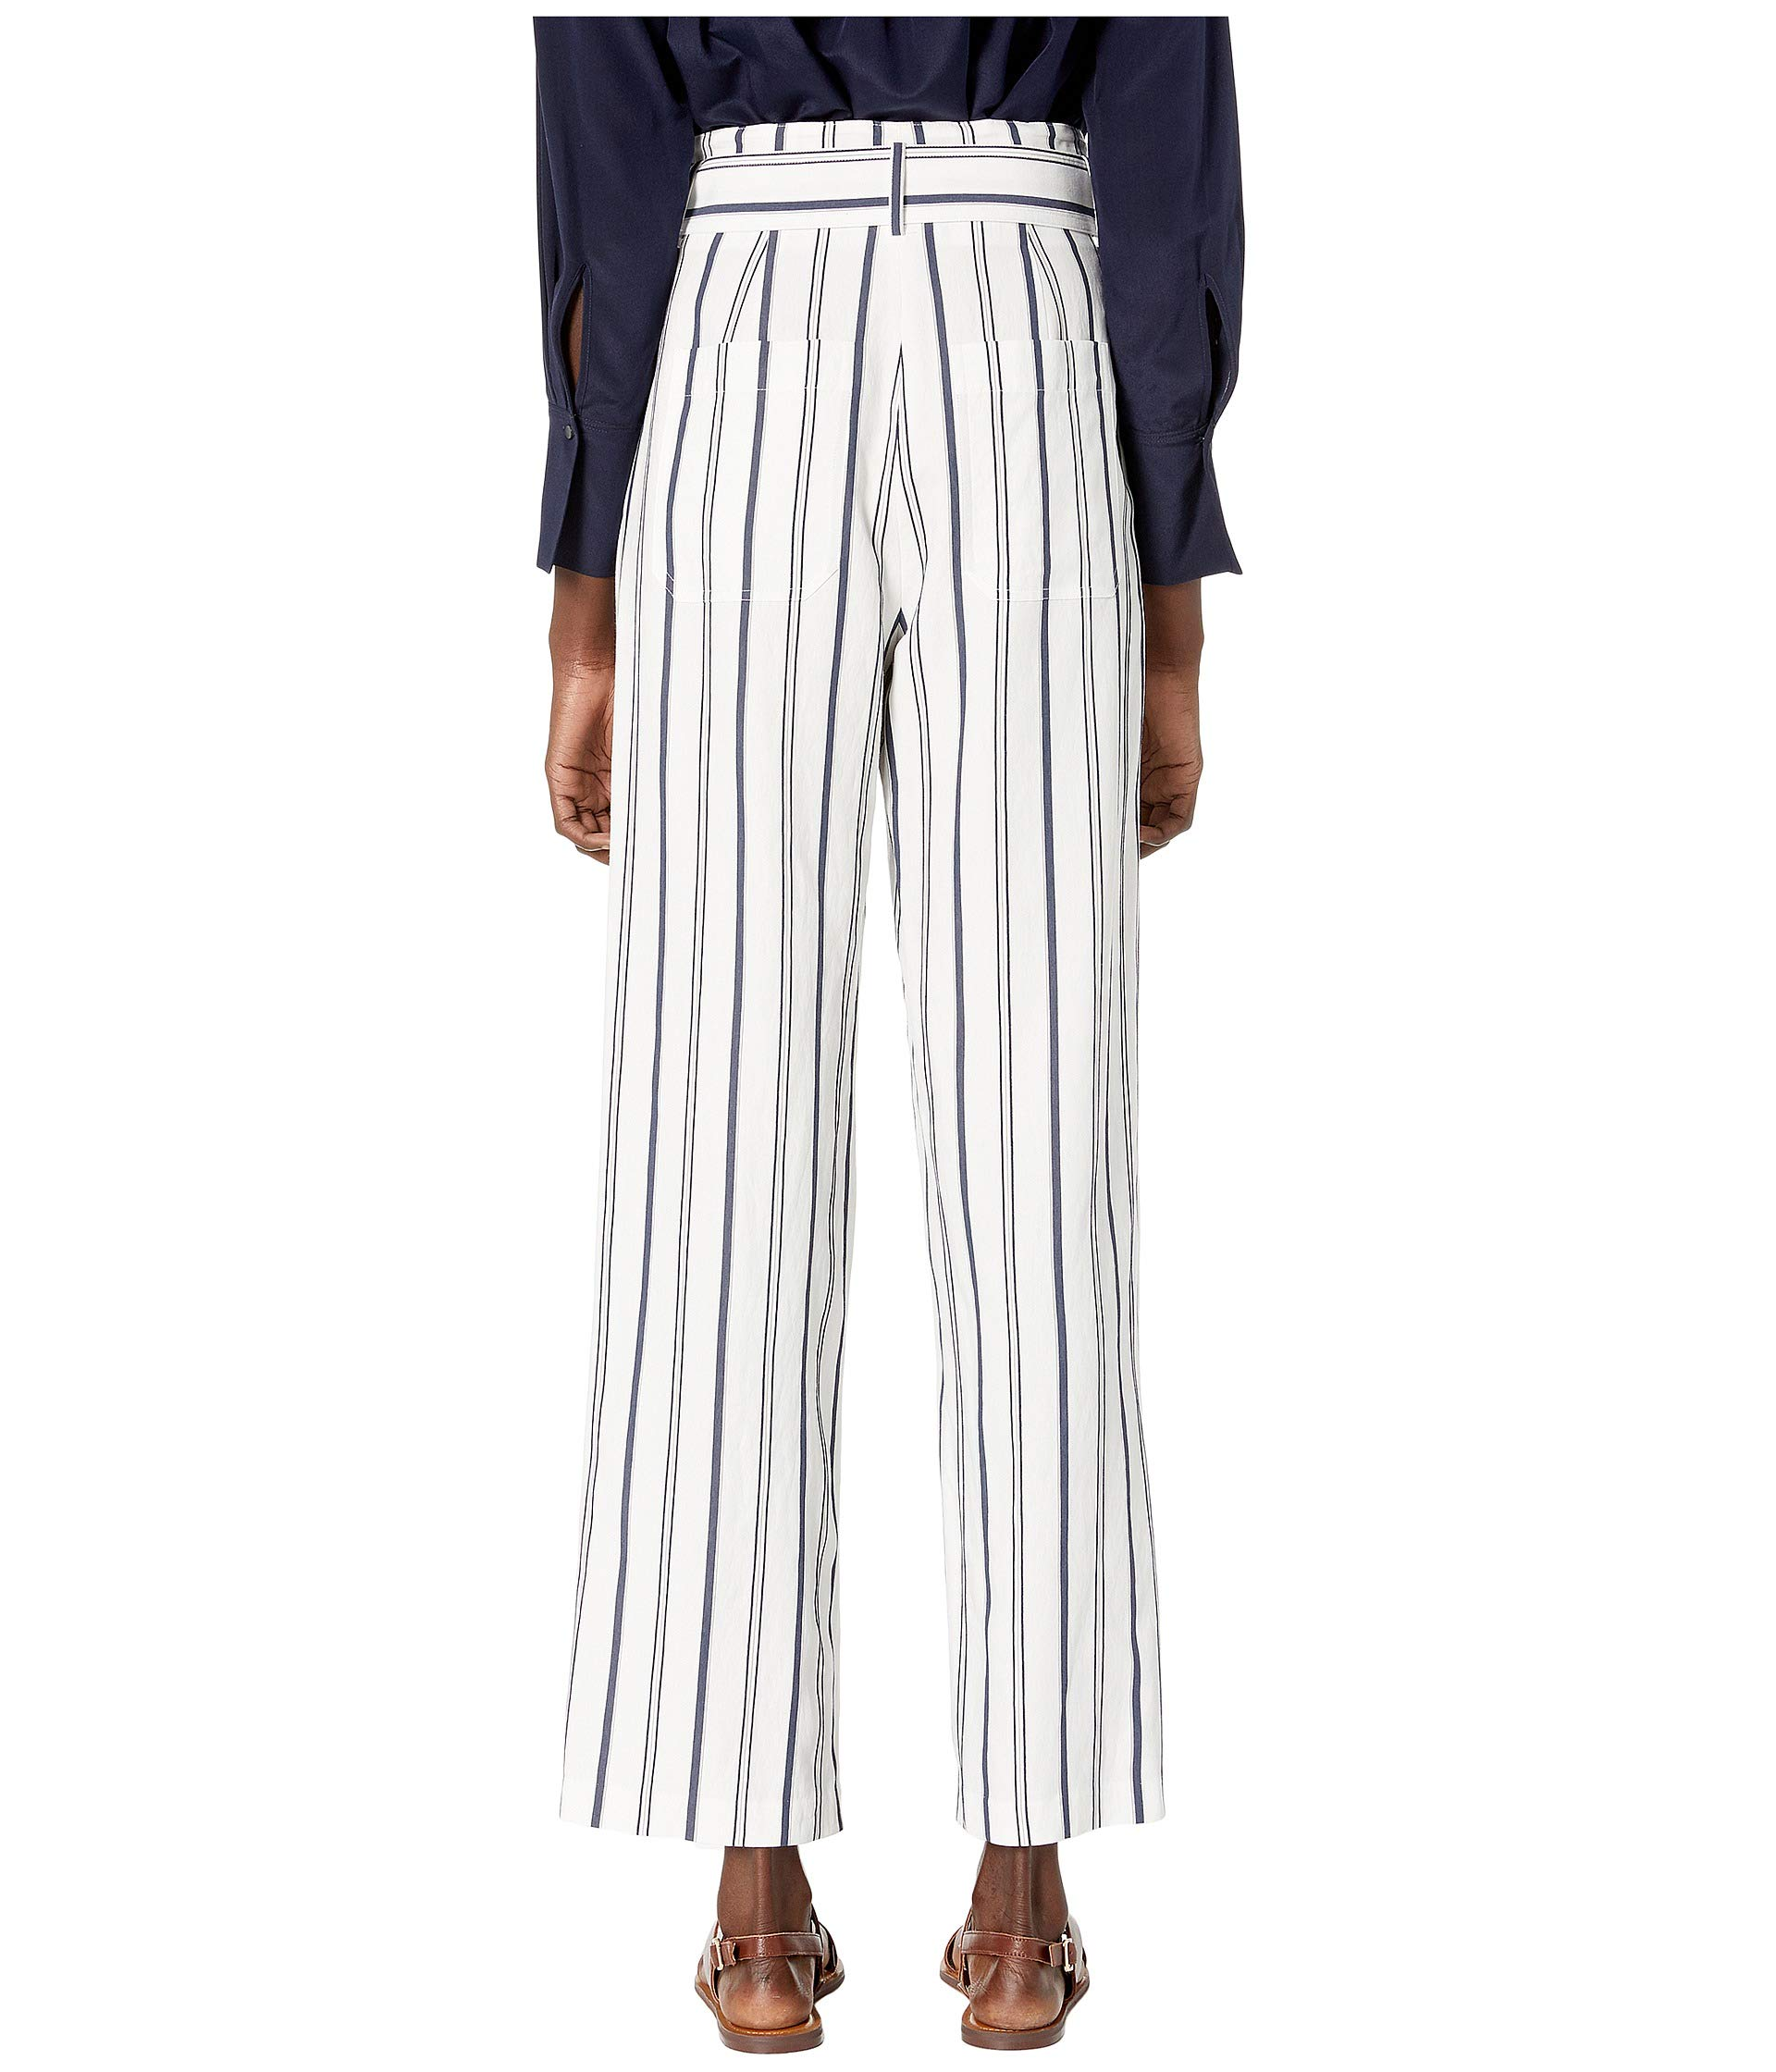 Vince Dobby Stripe Belted Pants at Luxury Zappos com